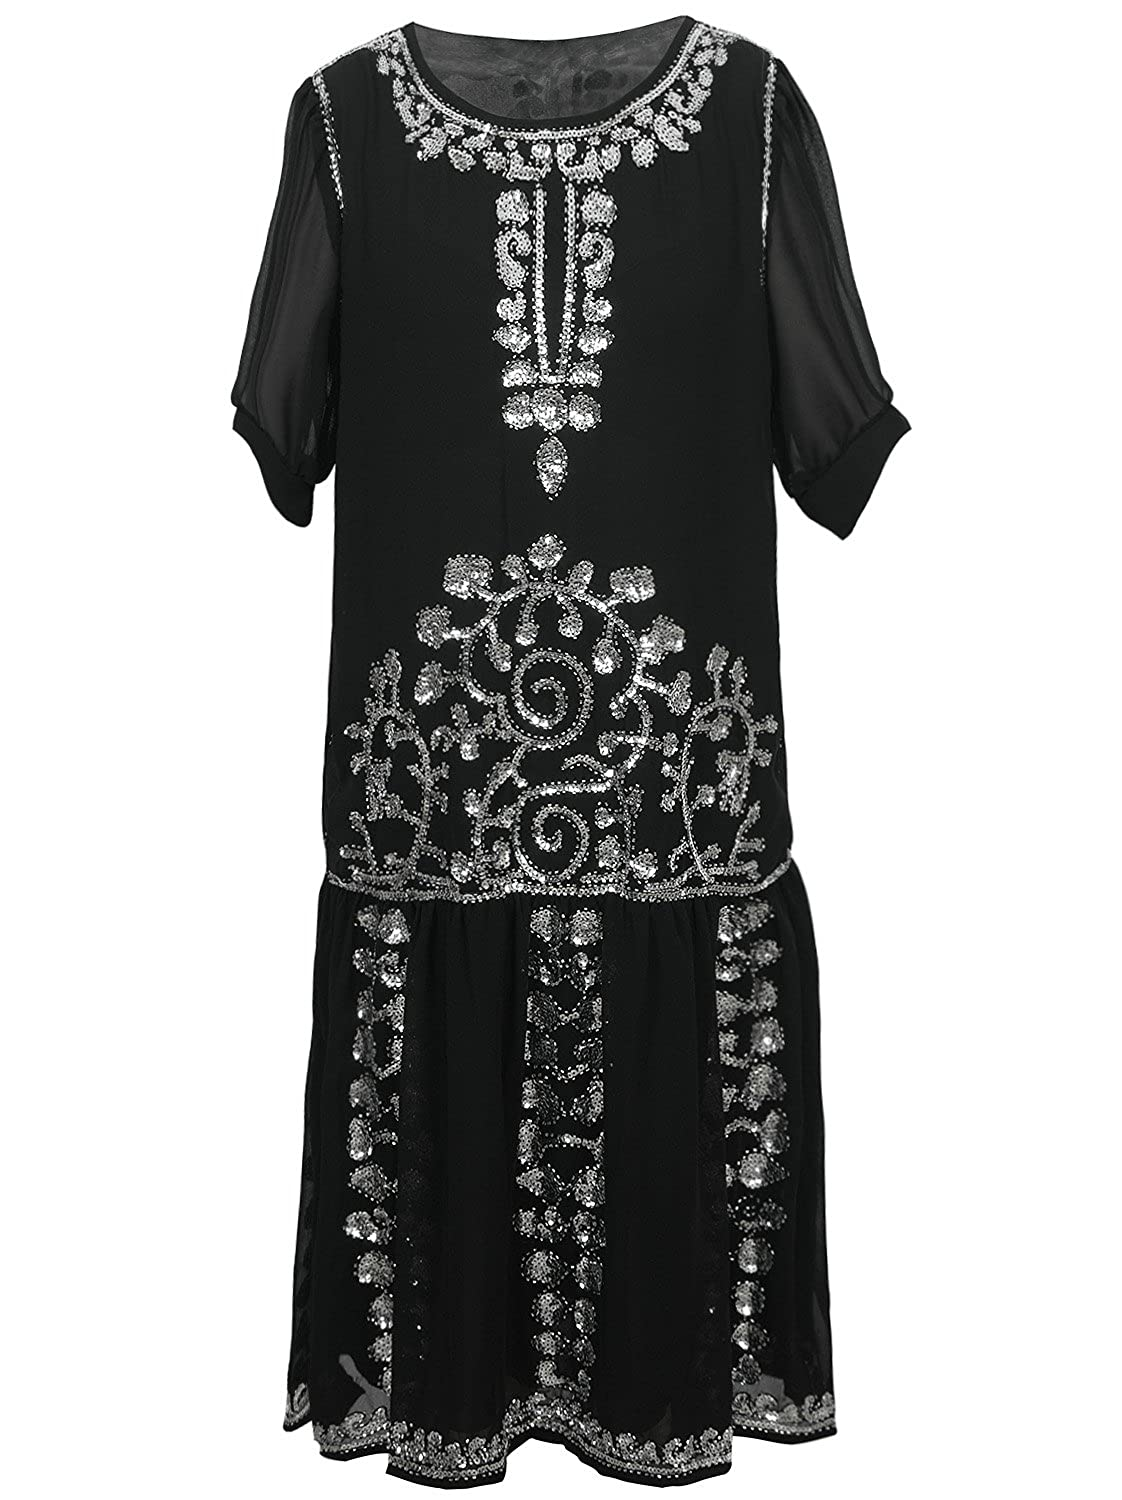 1920s Clothing Vijiv Womens Black 1920s Vintage Charleston Chiffon Beaded Sequin Flapper Dress $44.99 AT vintagedancer.com